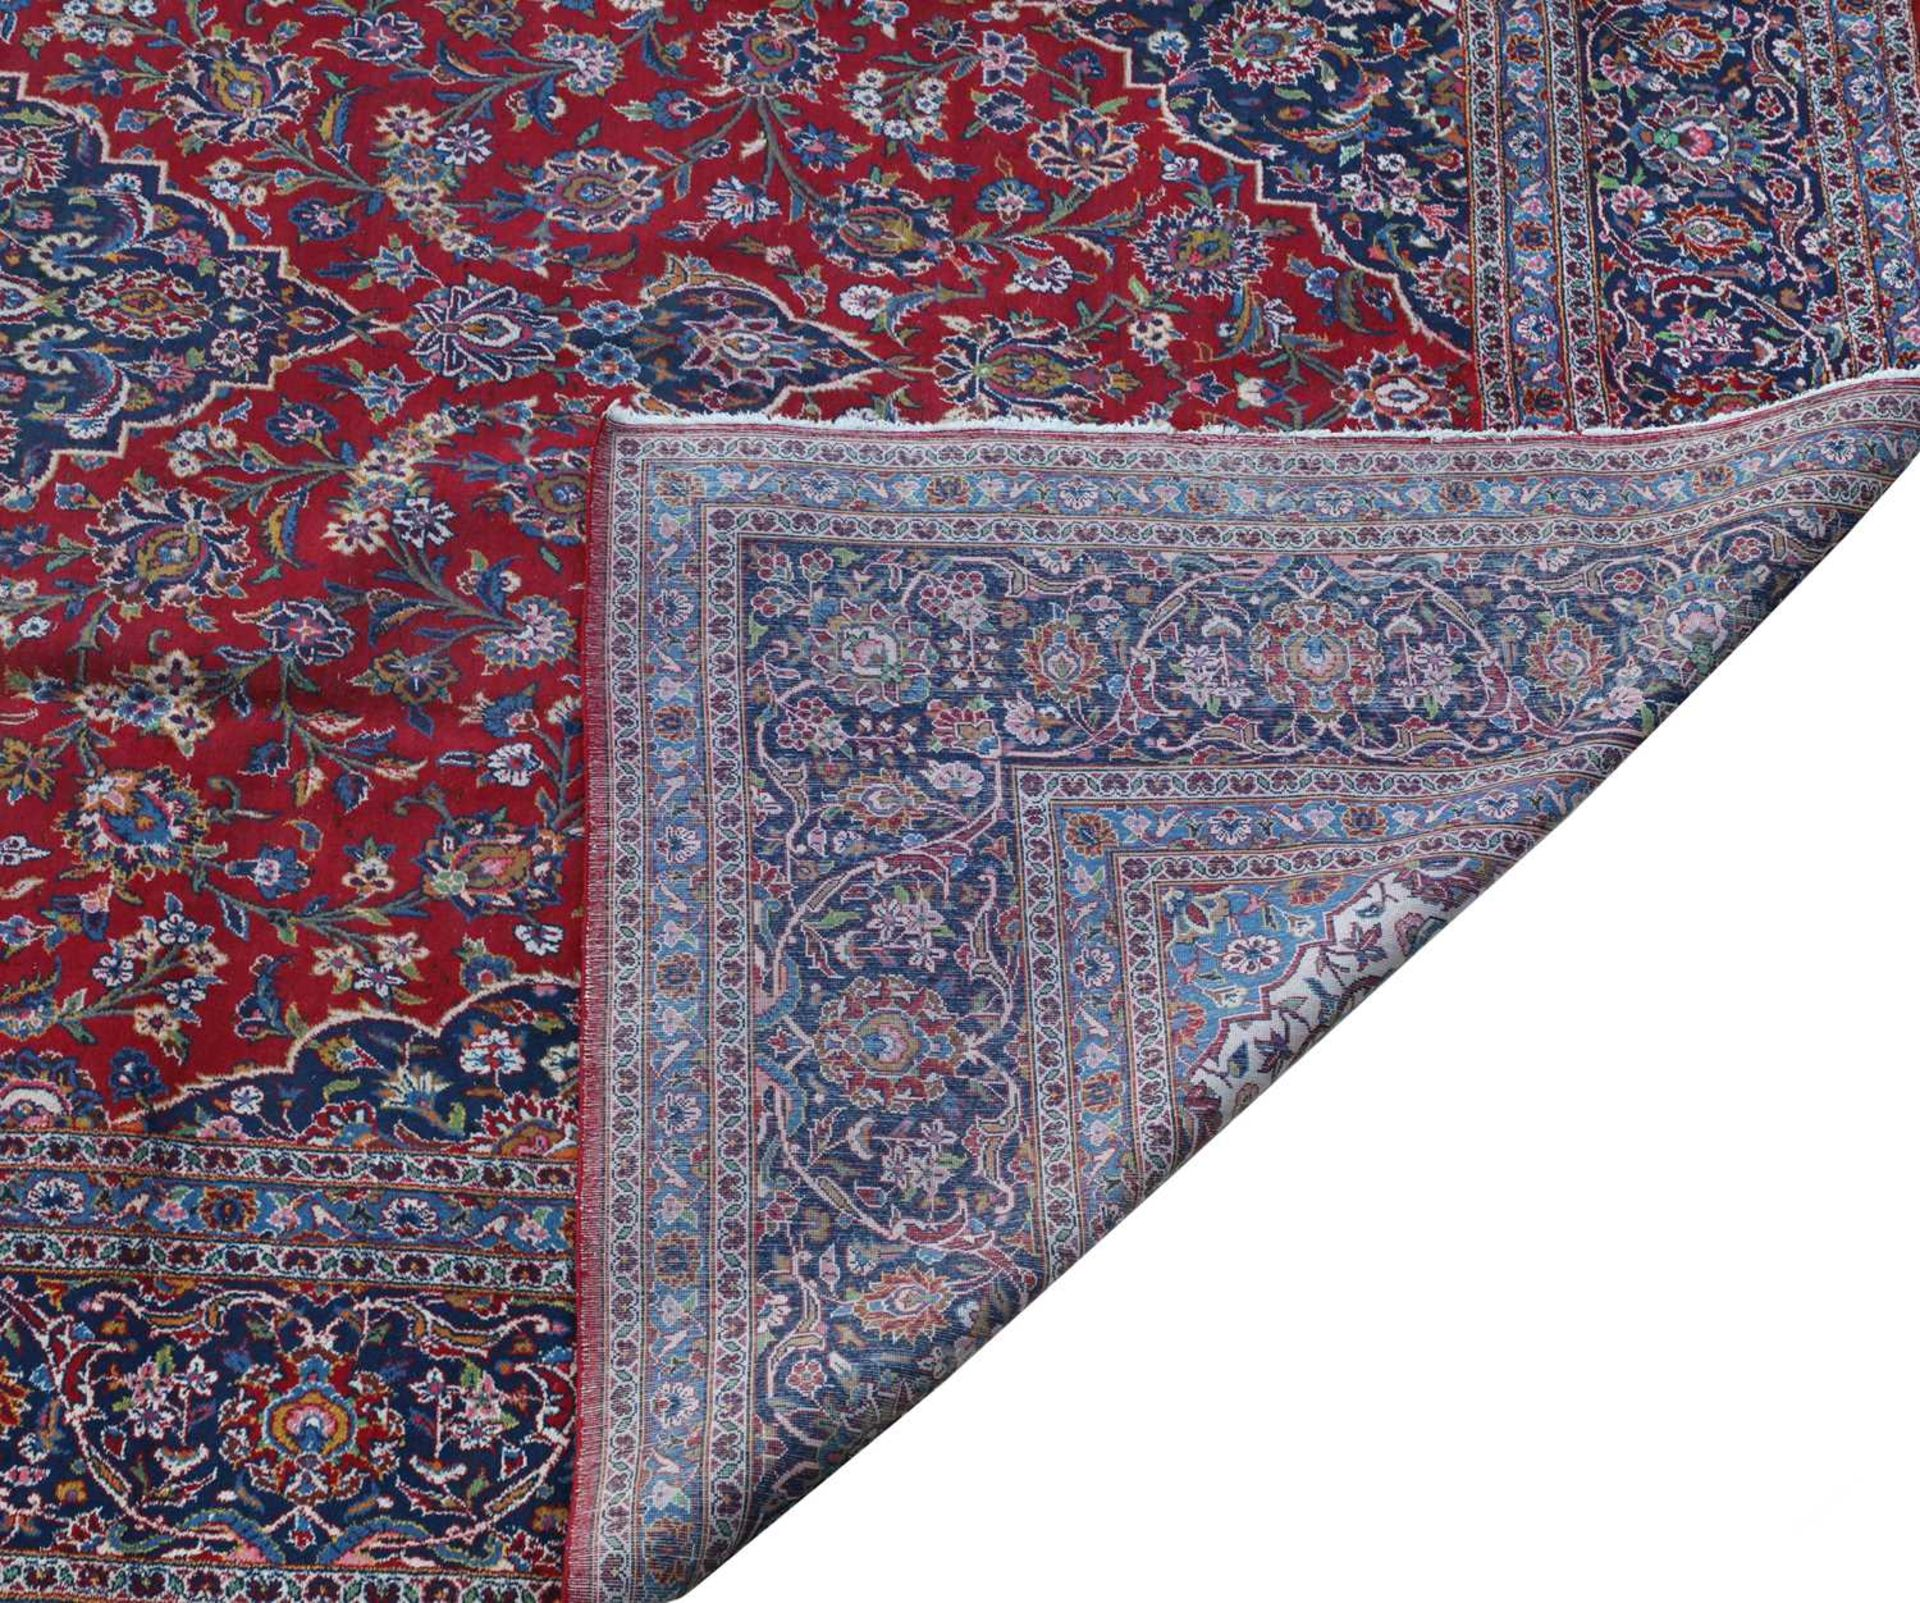 A large Persian Kashan carpet, - Image 3 of 3